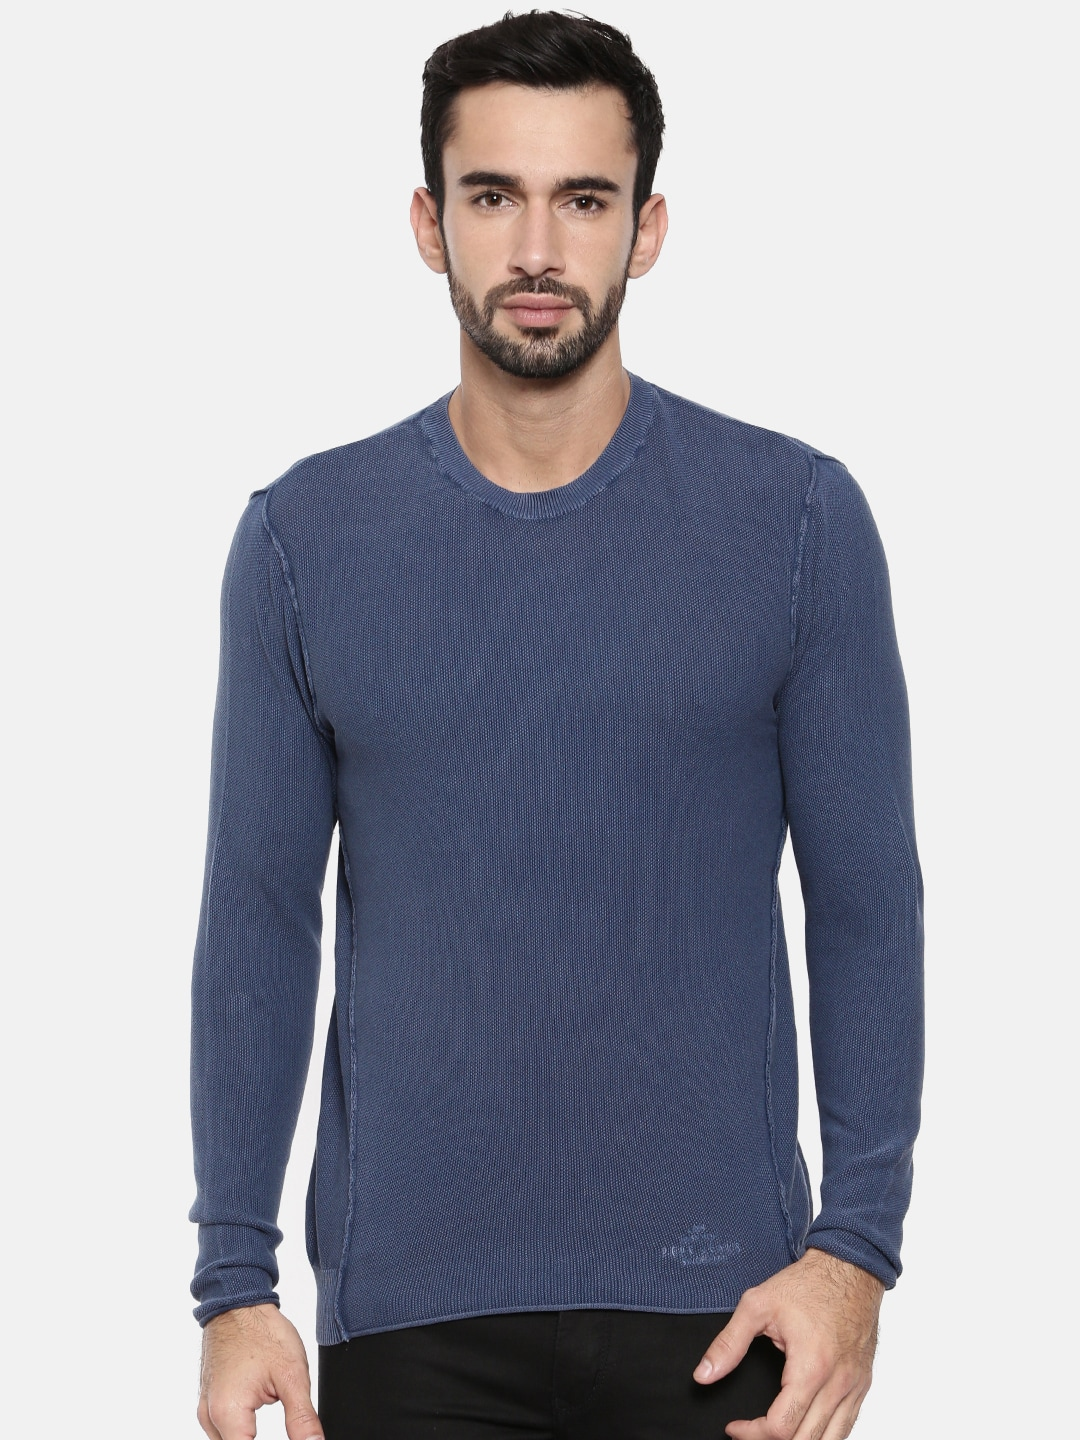 cddd94f6a5 Pepe Jeans - Buy Pepe Jeans Clothing Online in India